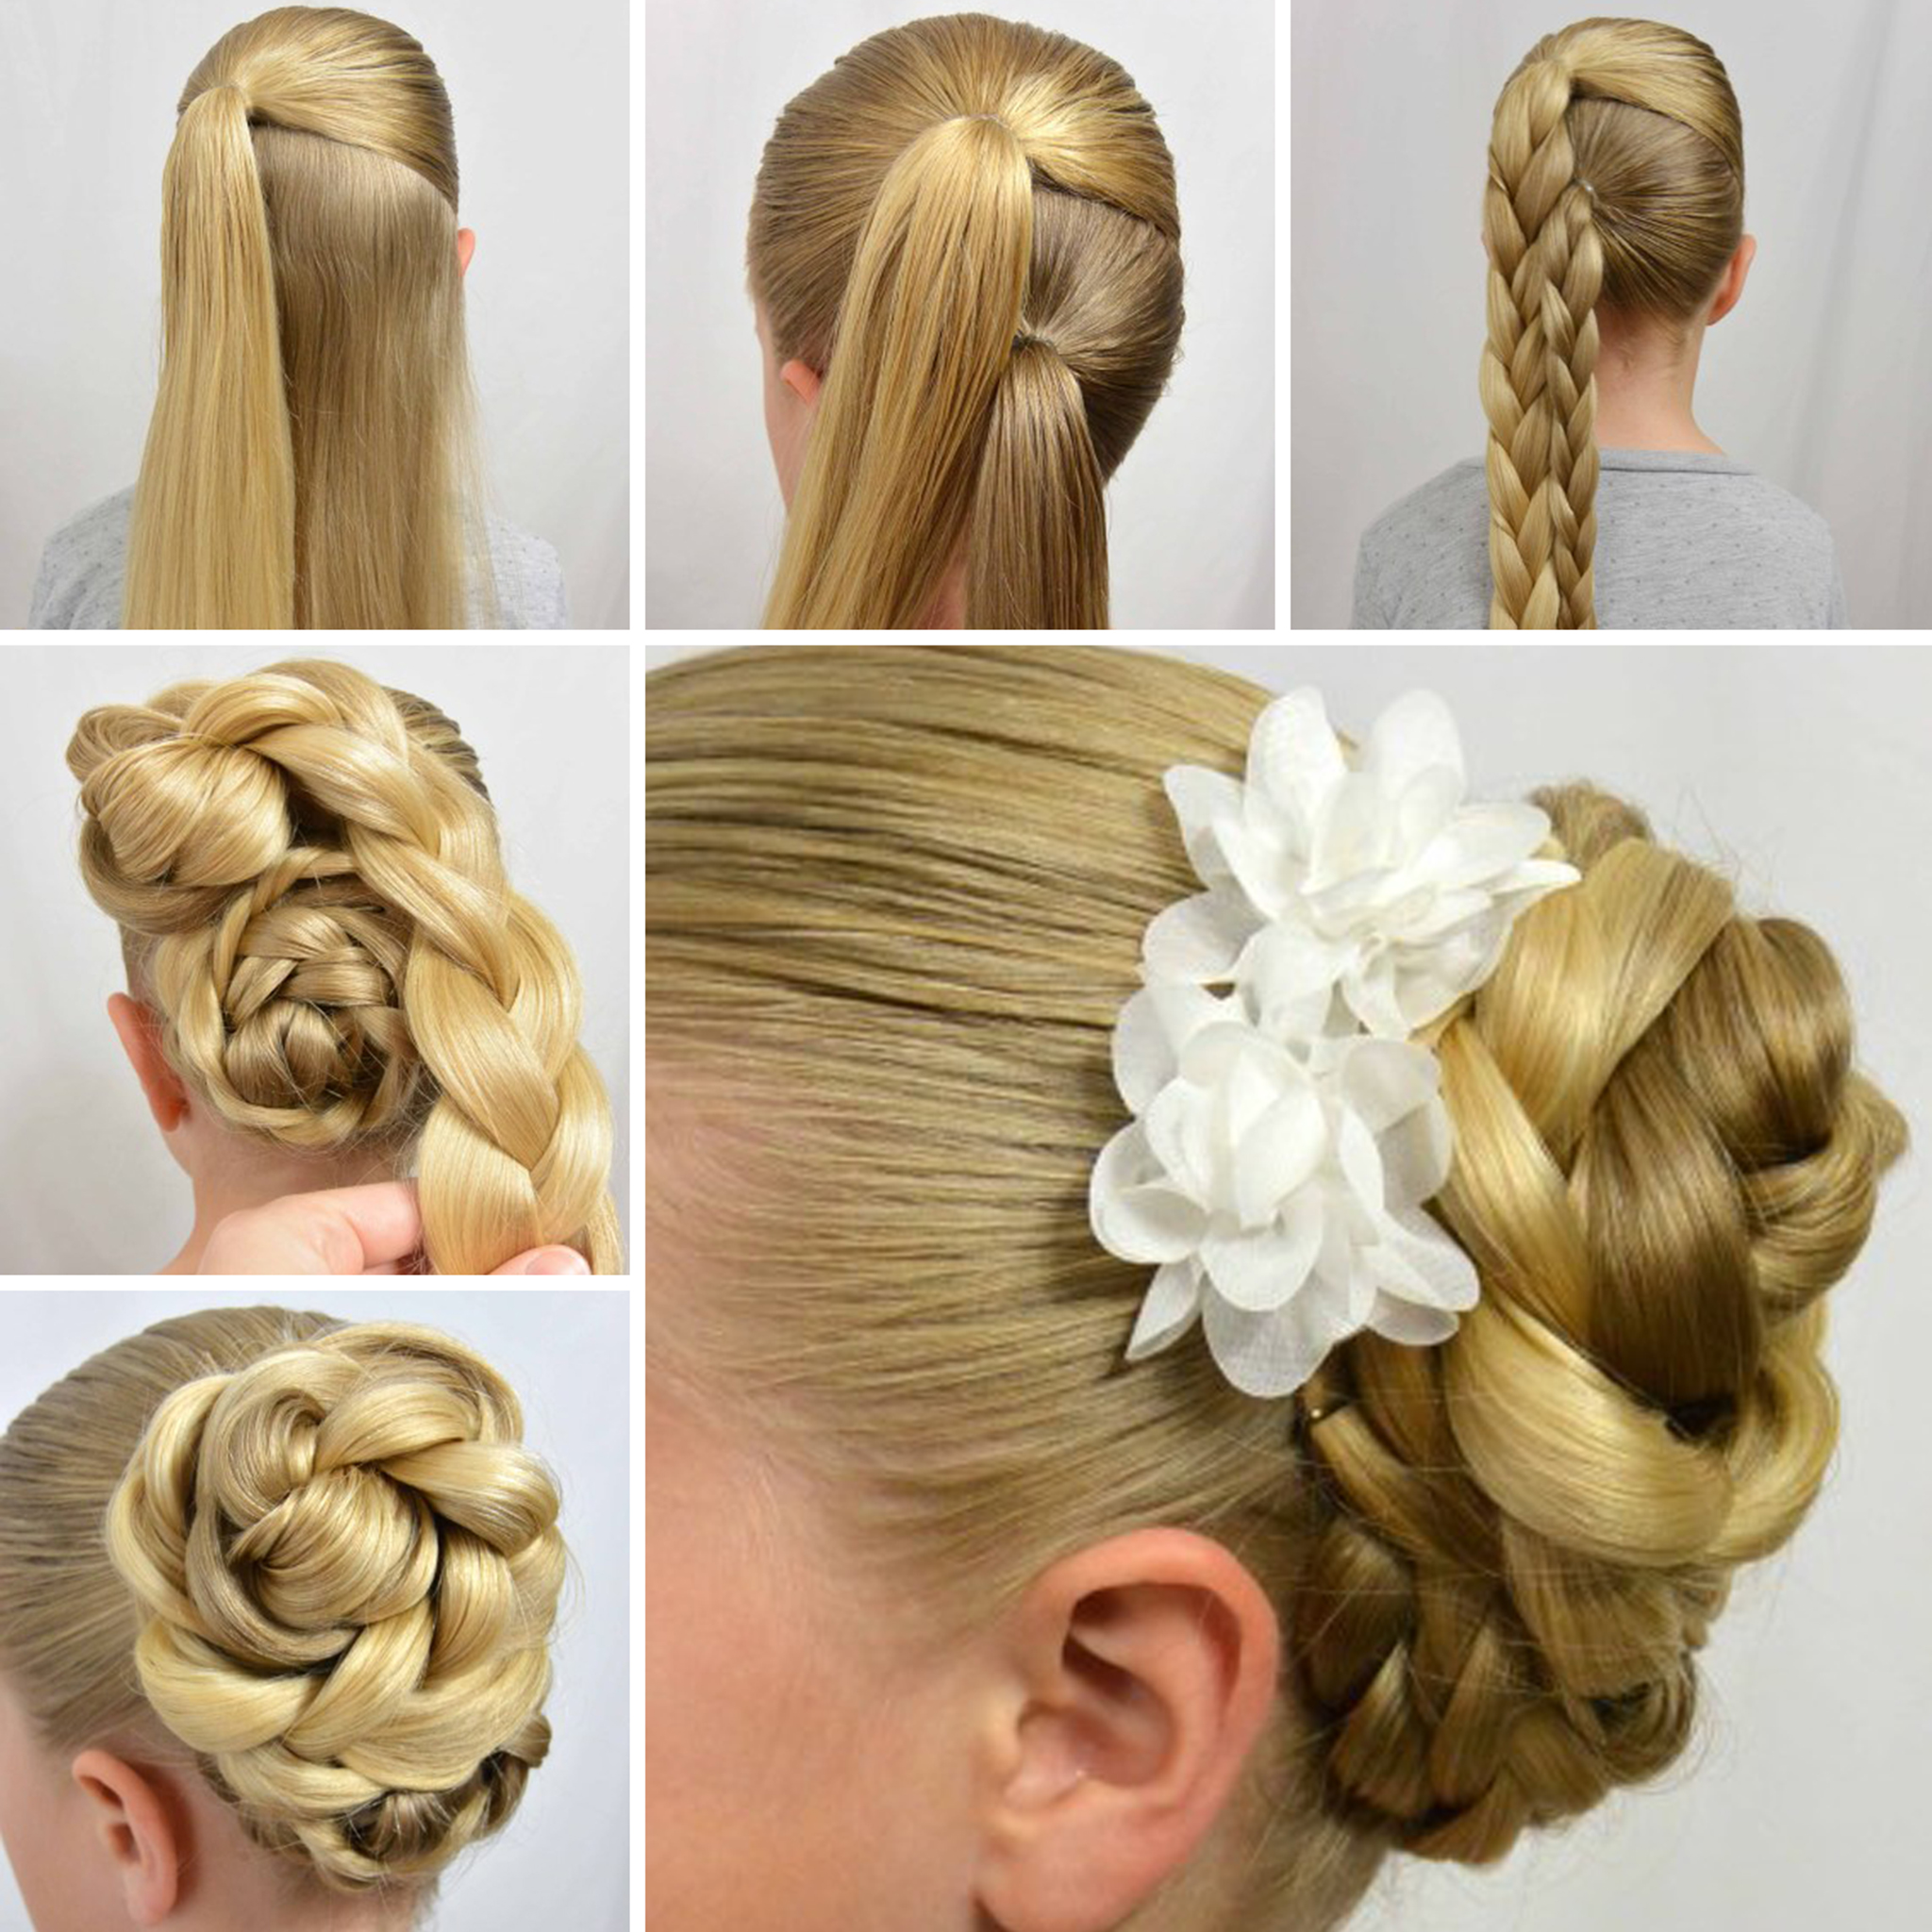 Easy Step By Step Tutorials On How To Do Braided Hairstyle (10 Hairstyles)